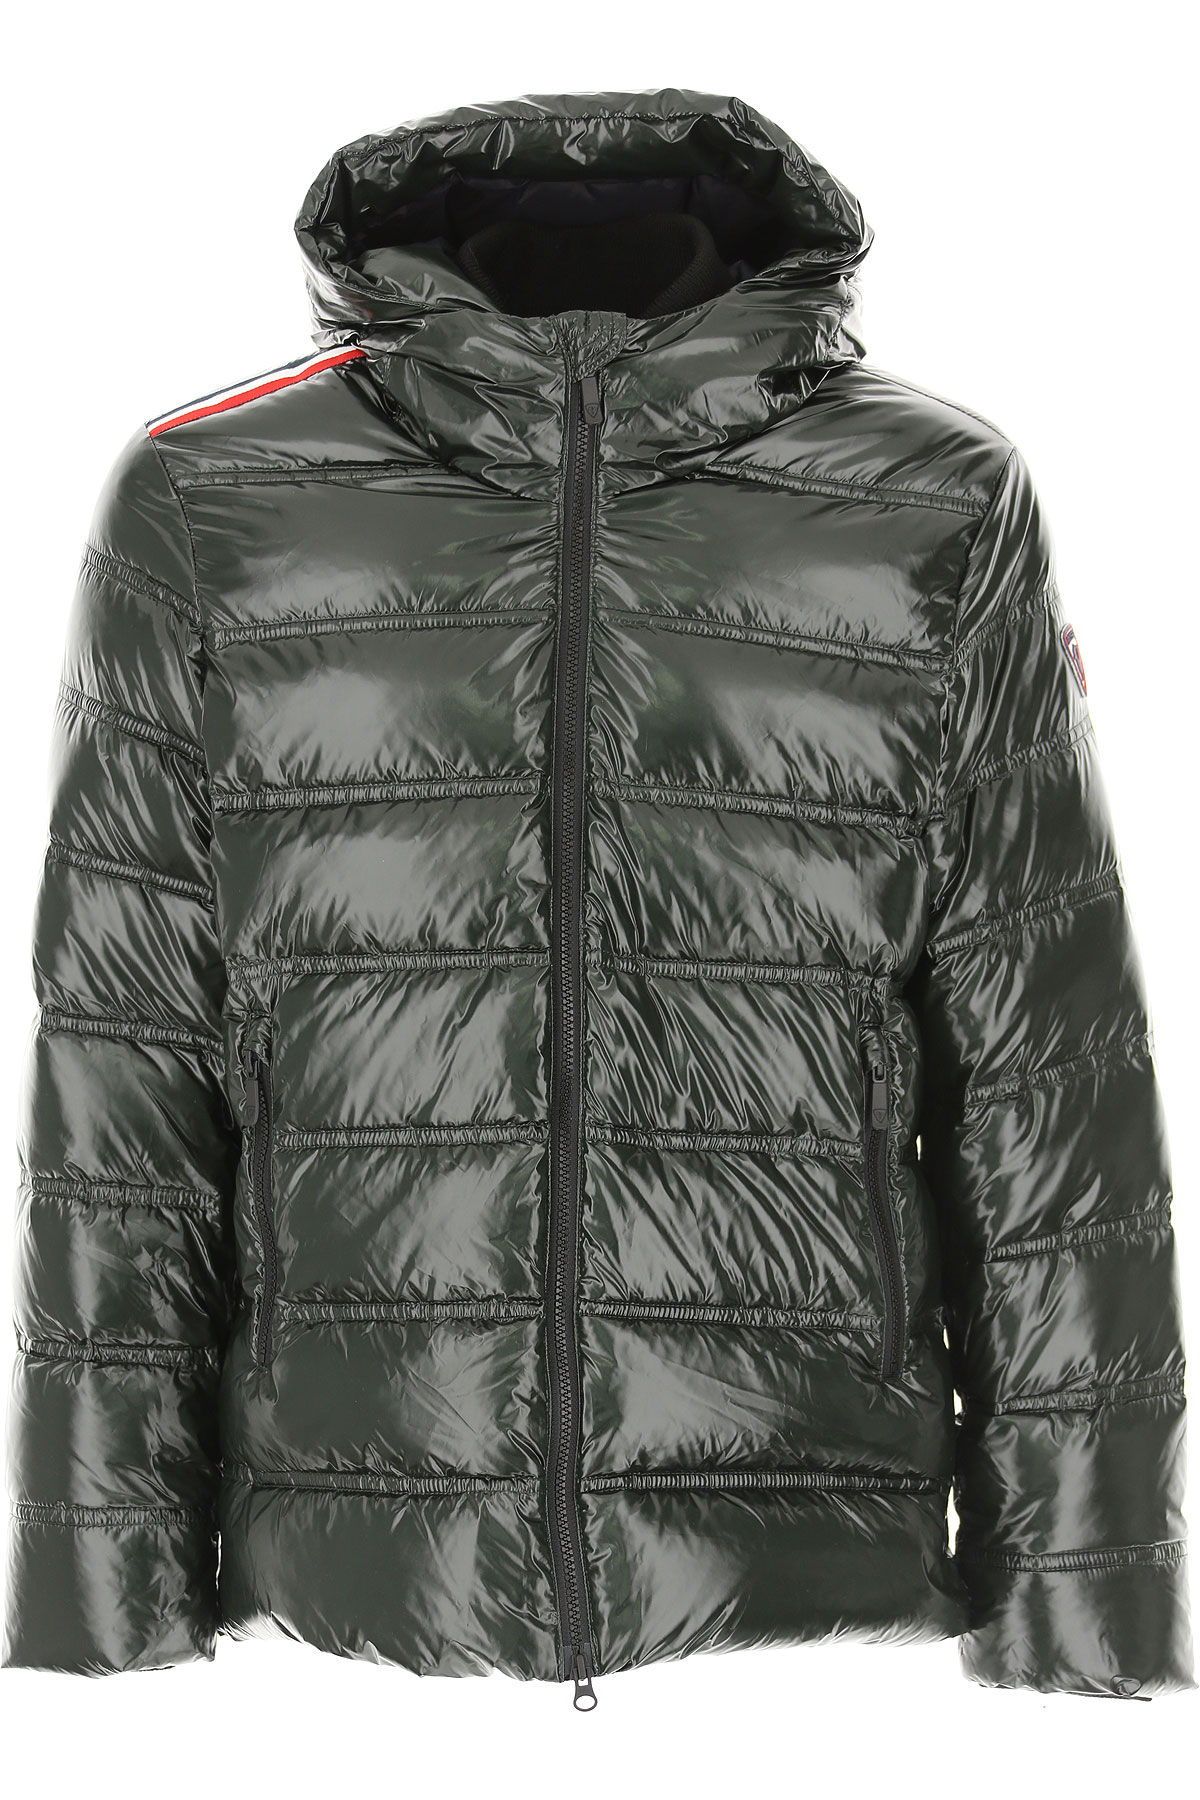 Rossignol Down Jacket for Men, Puffer Ski Jacket On Sale, Forest Green, Down, 2019, L M S